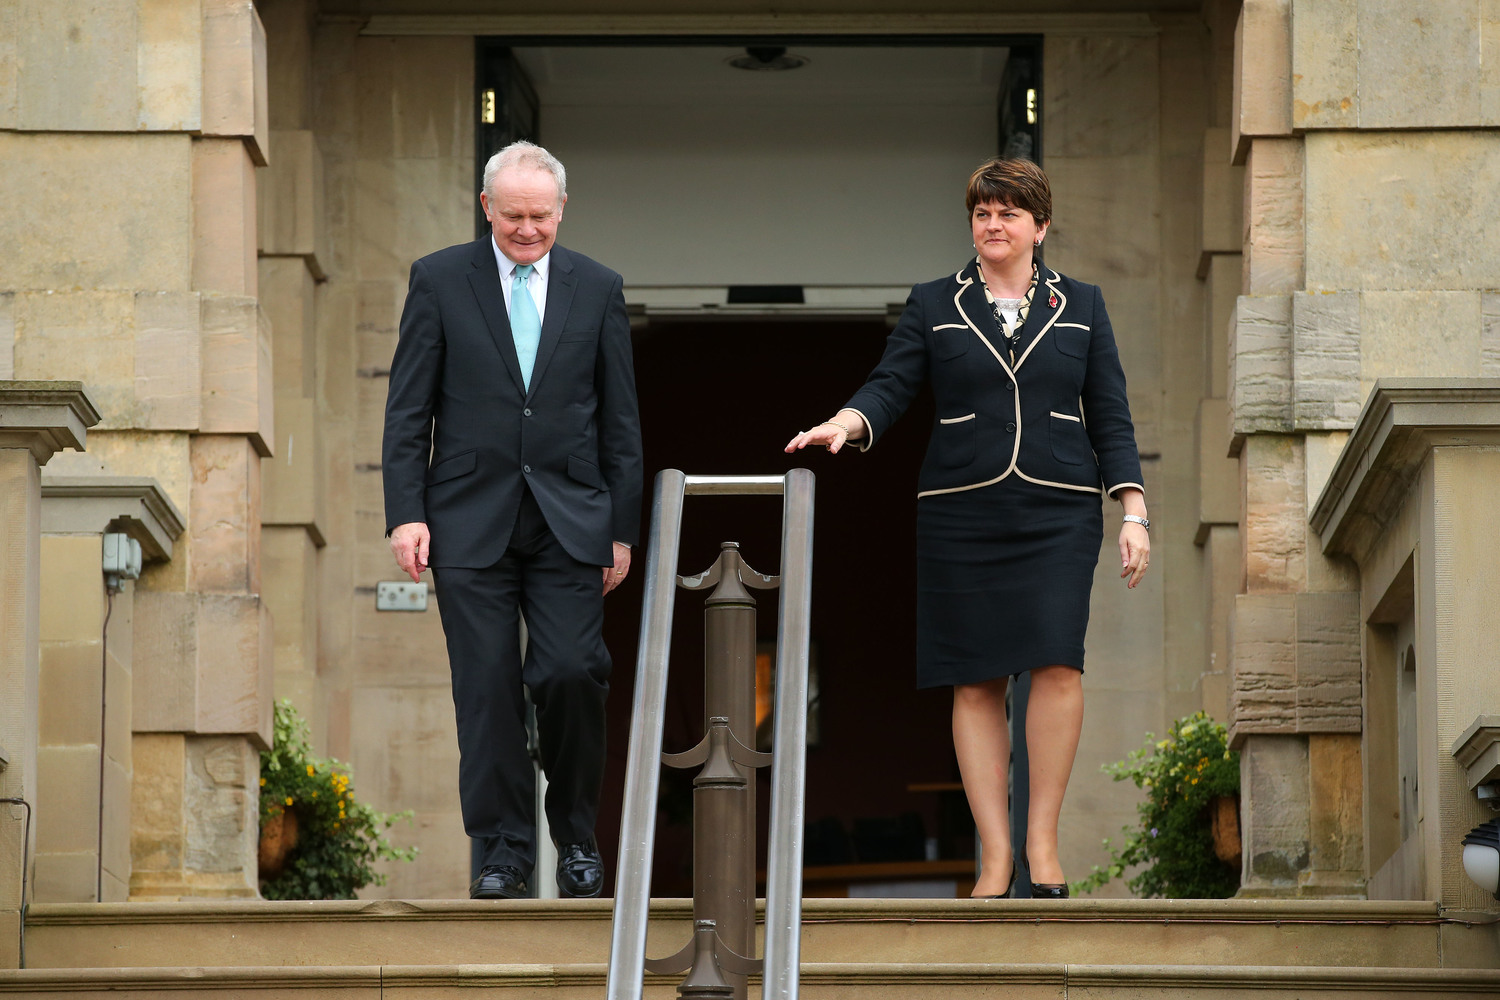 Martin and Arlene - 'Marlene' - had only a year in office together